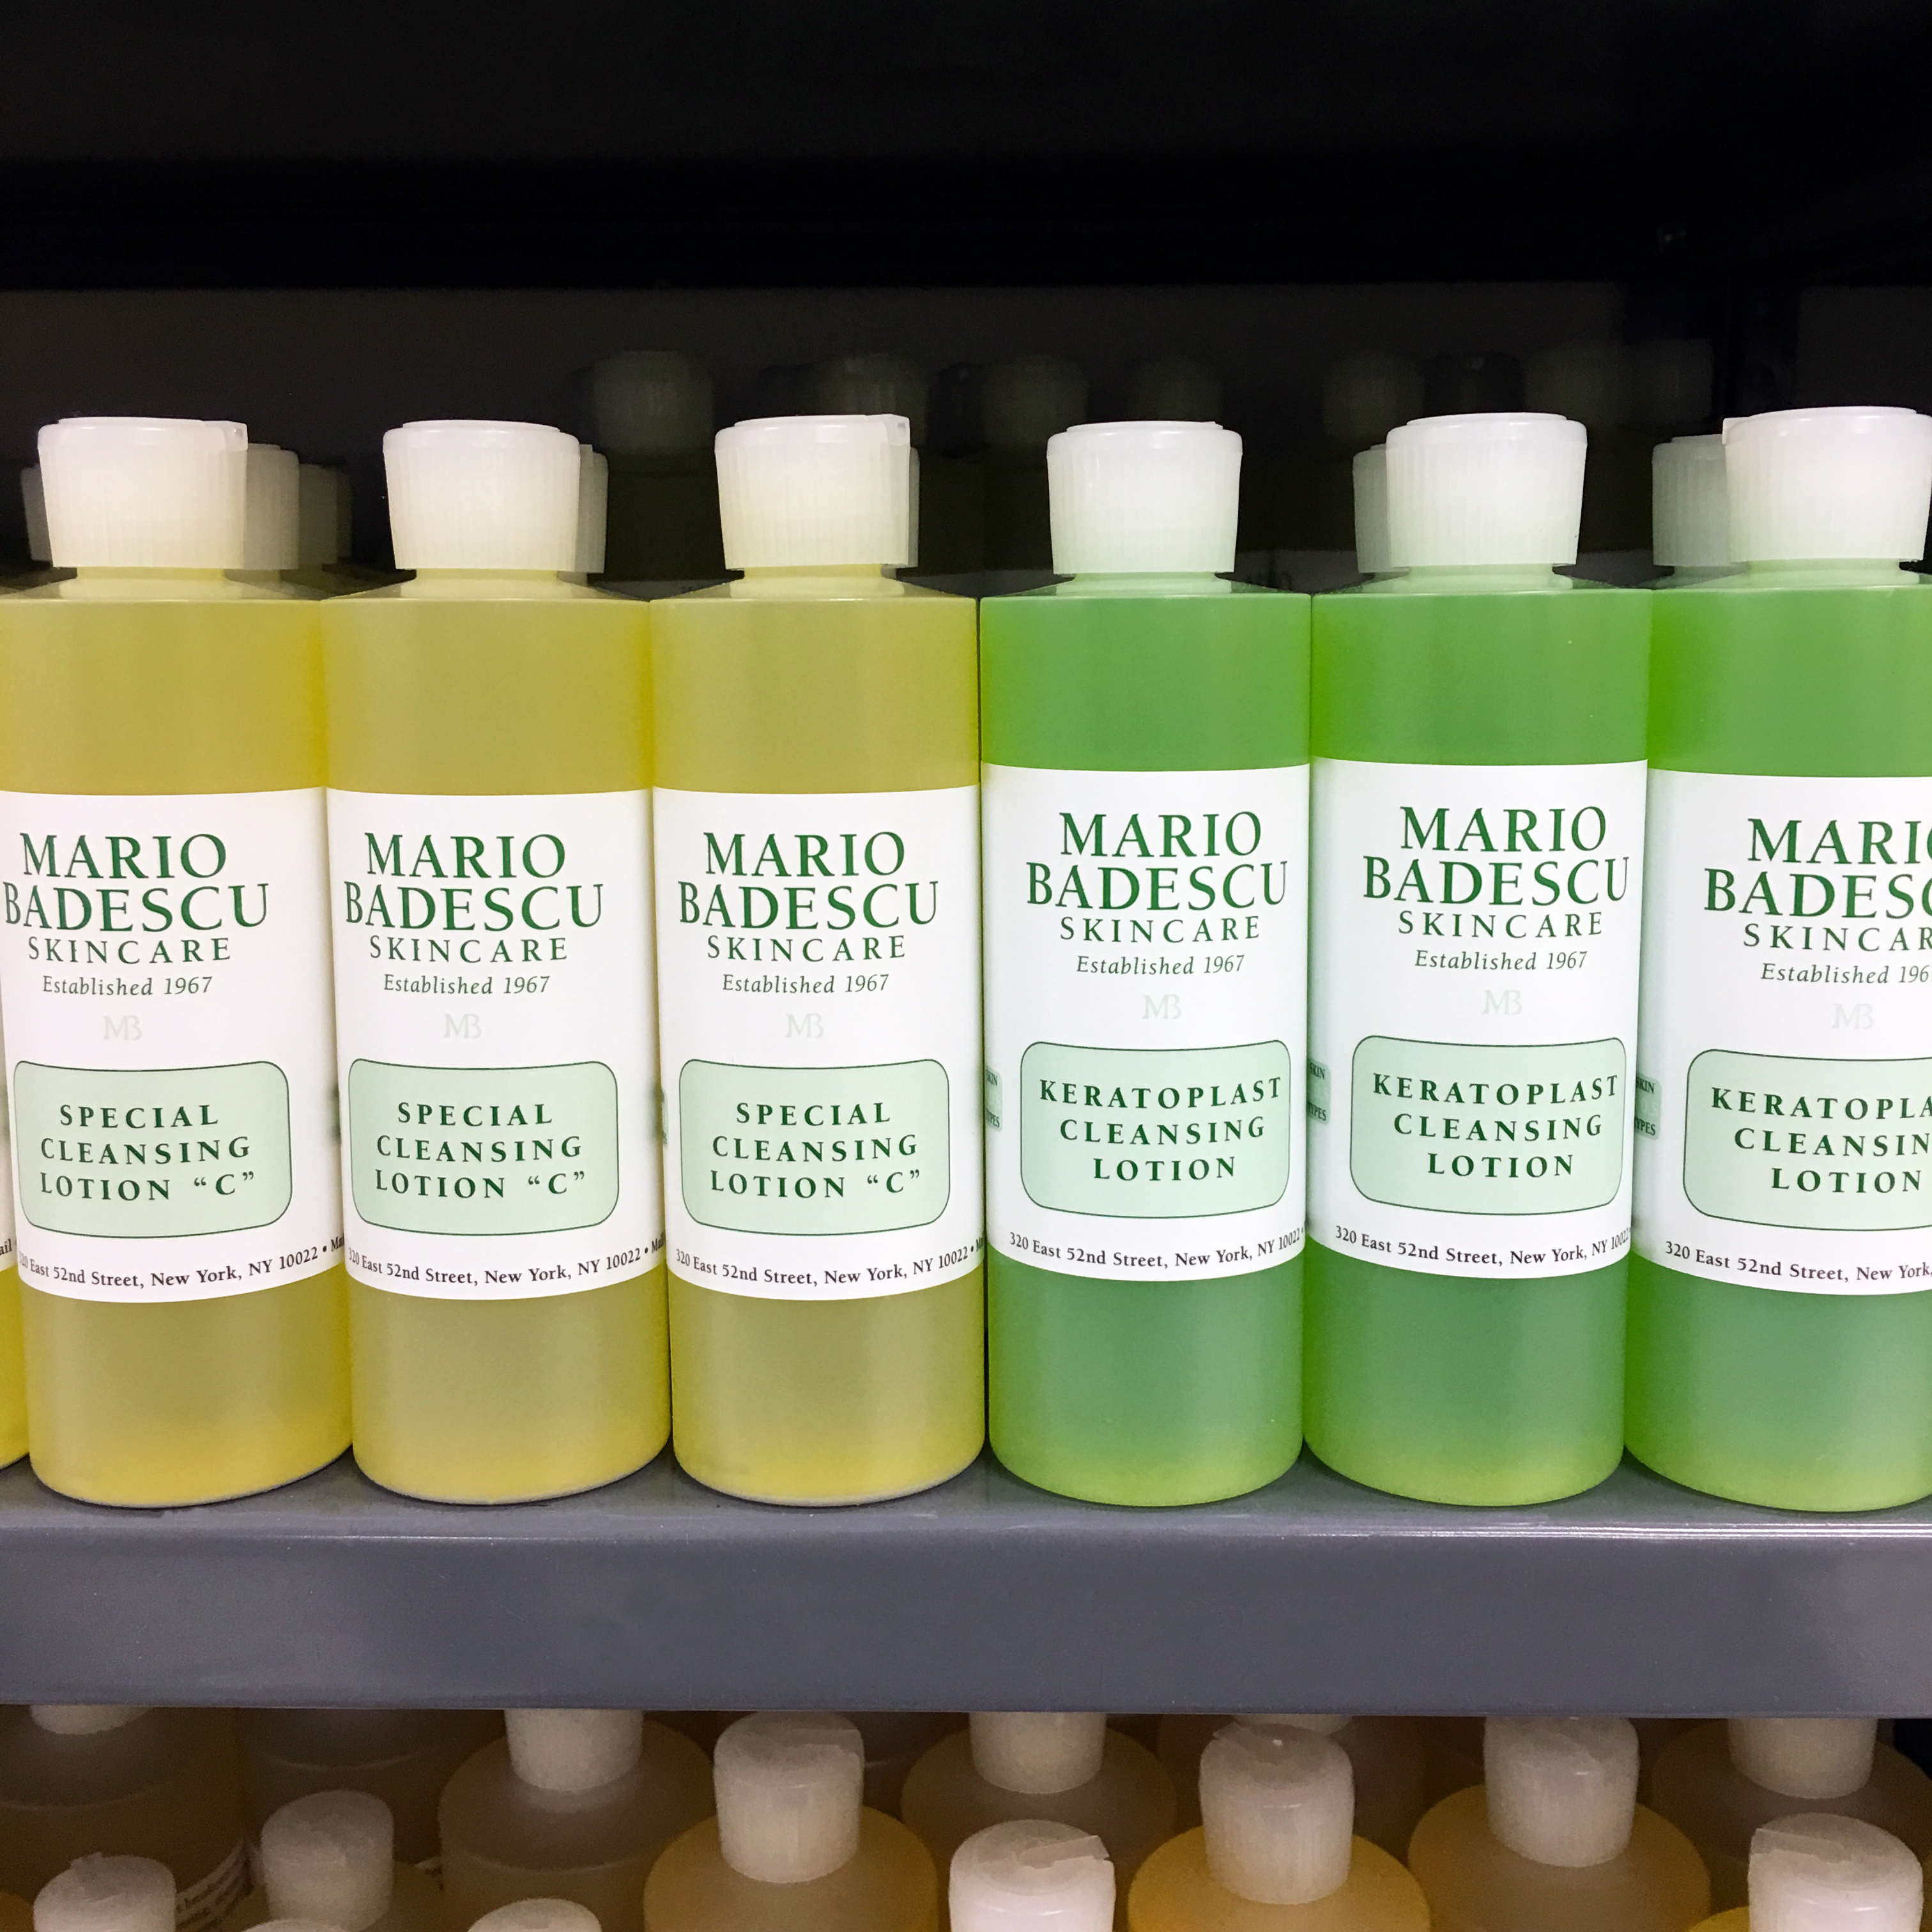 03.28.16 - Why Are Our Toners Called Cleansing Lotions